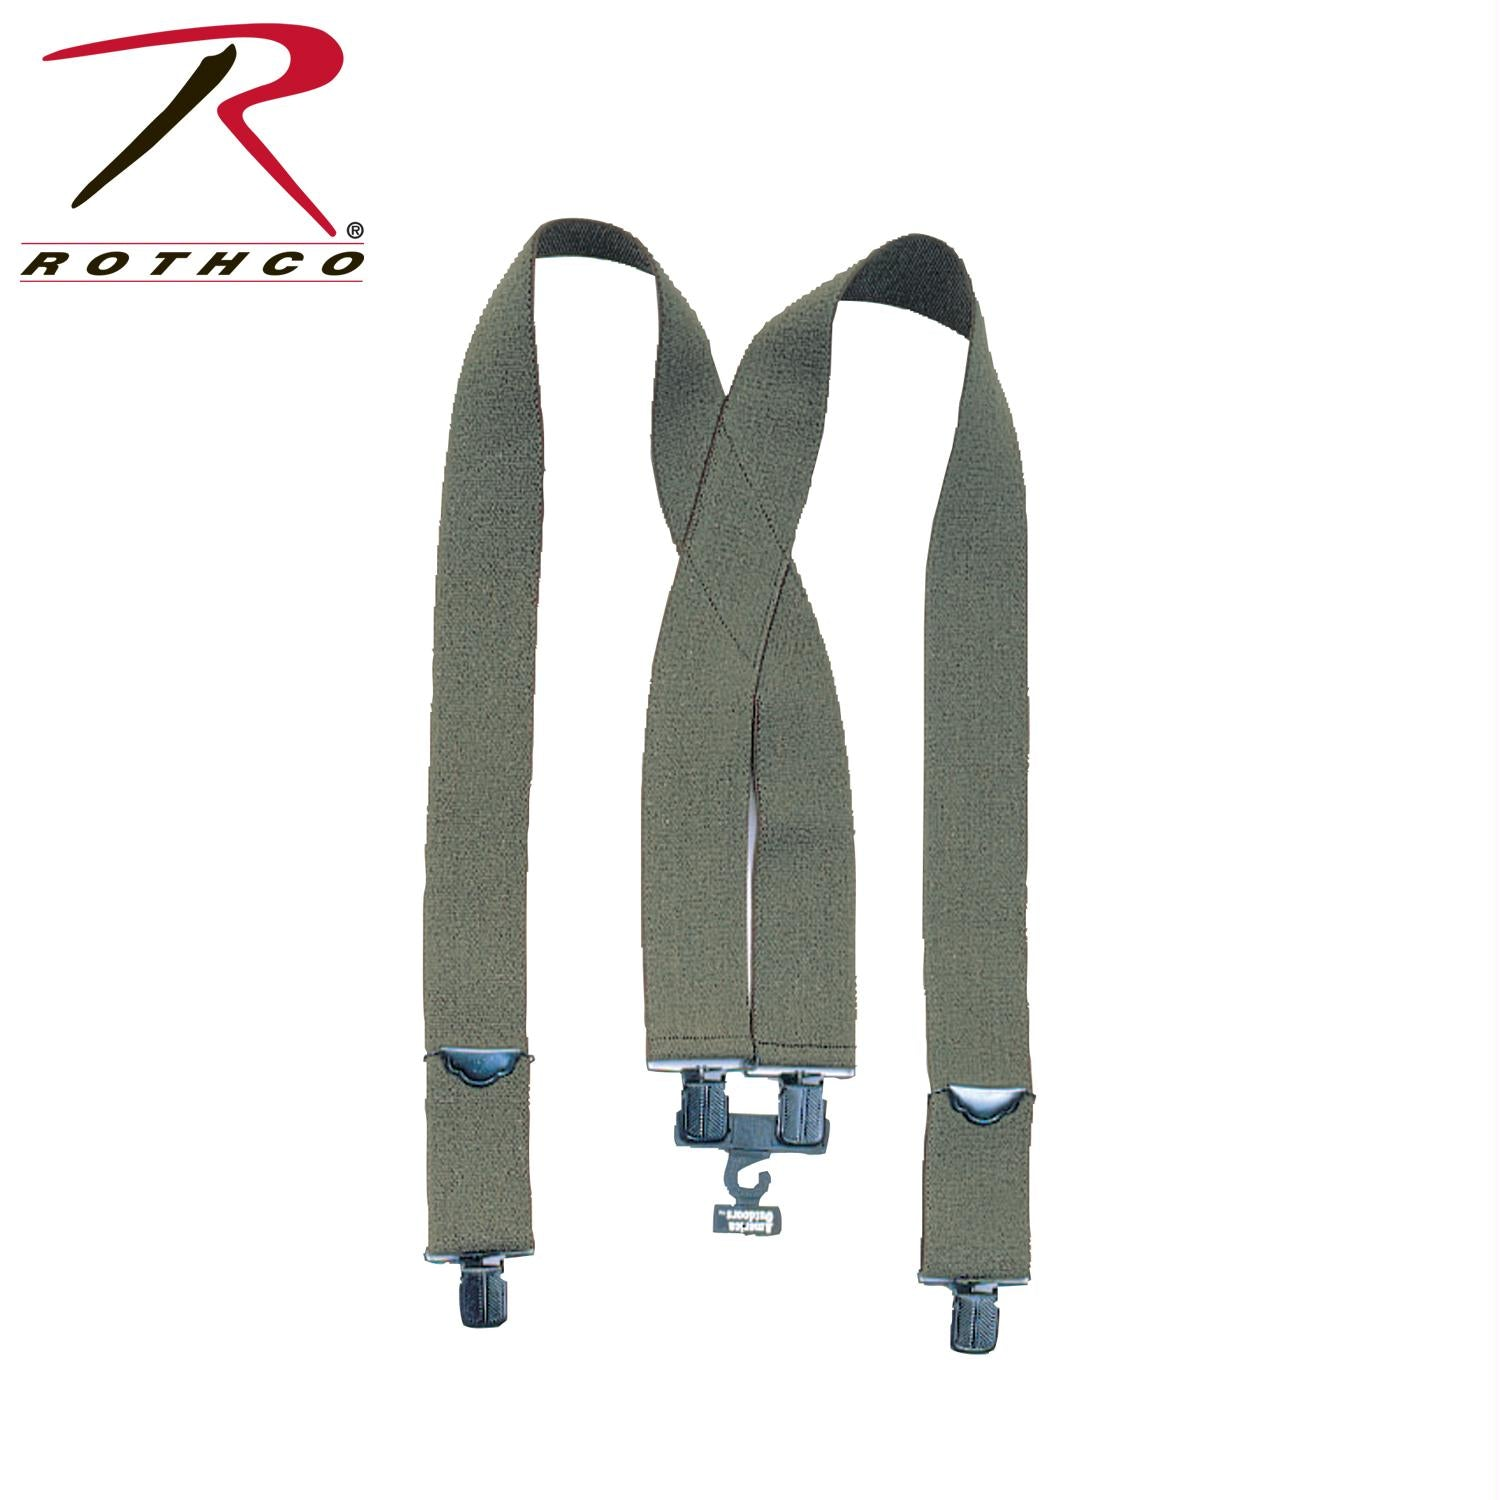 Rothco Pants Suspenders - Olive Drab